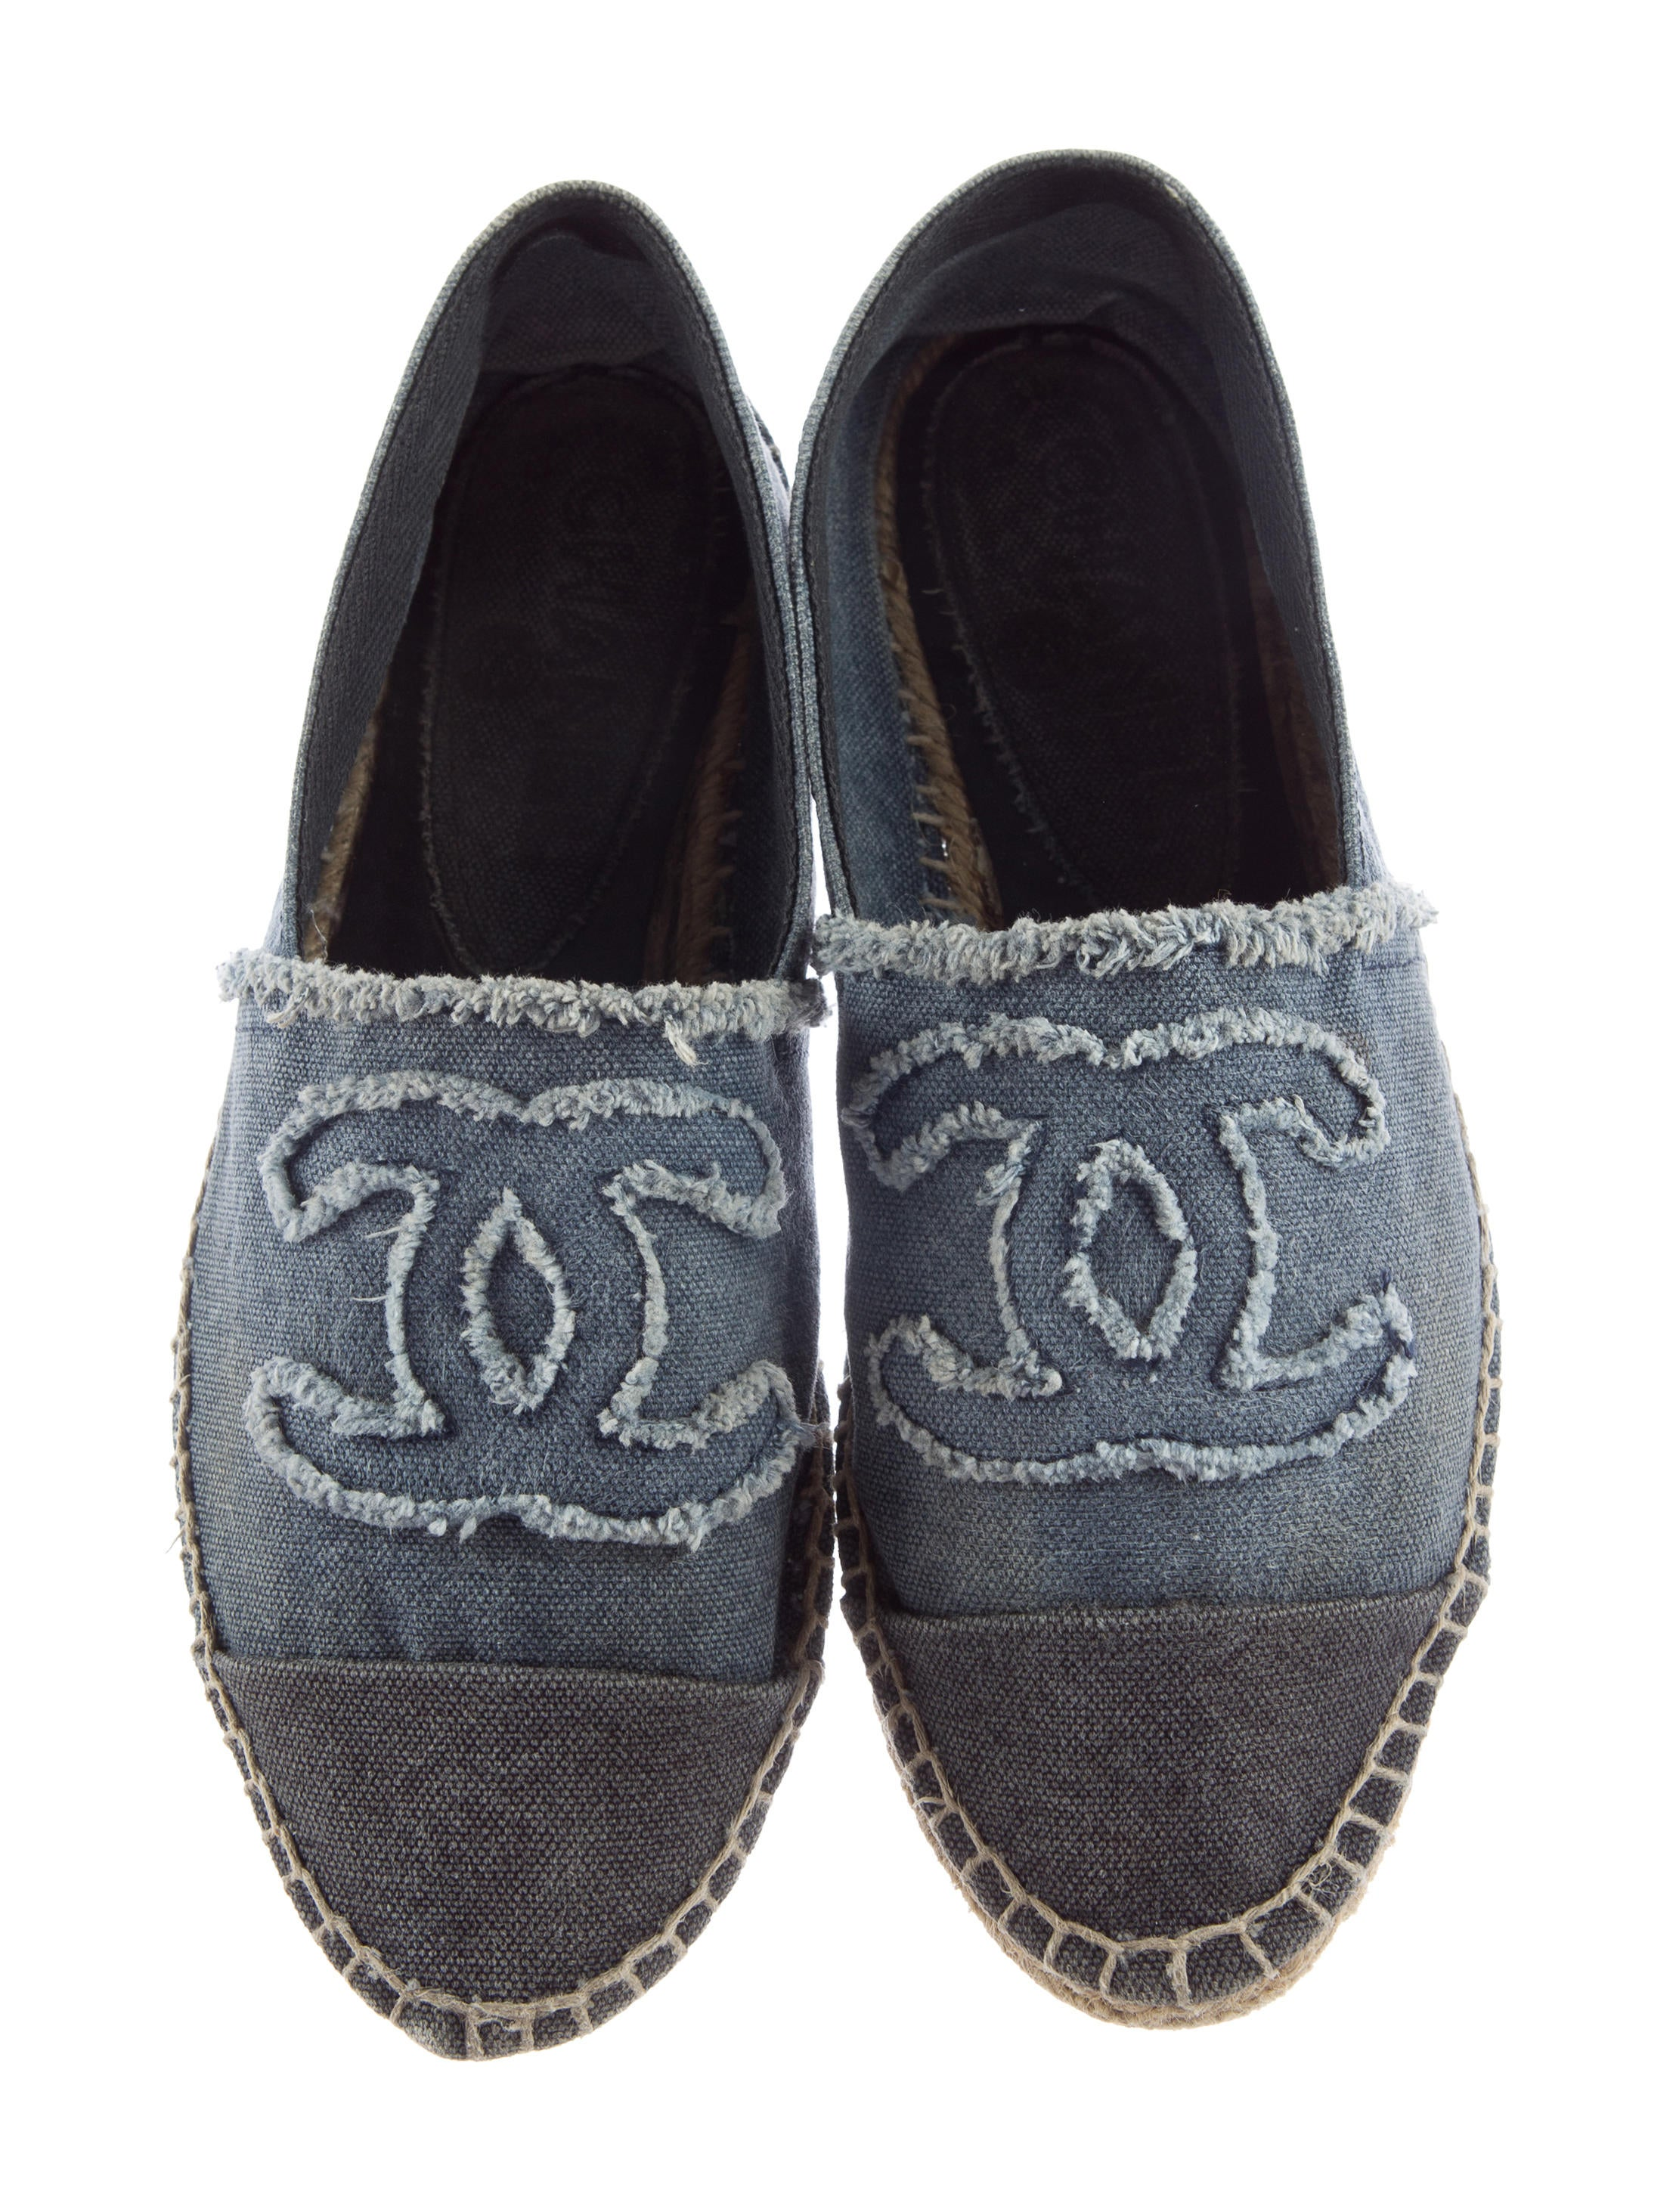 chanel canvas espadrille flats shoes cha131796 the